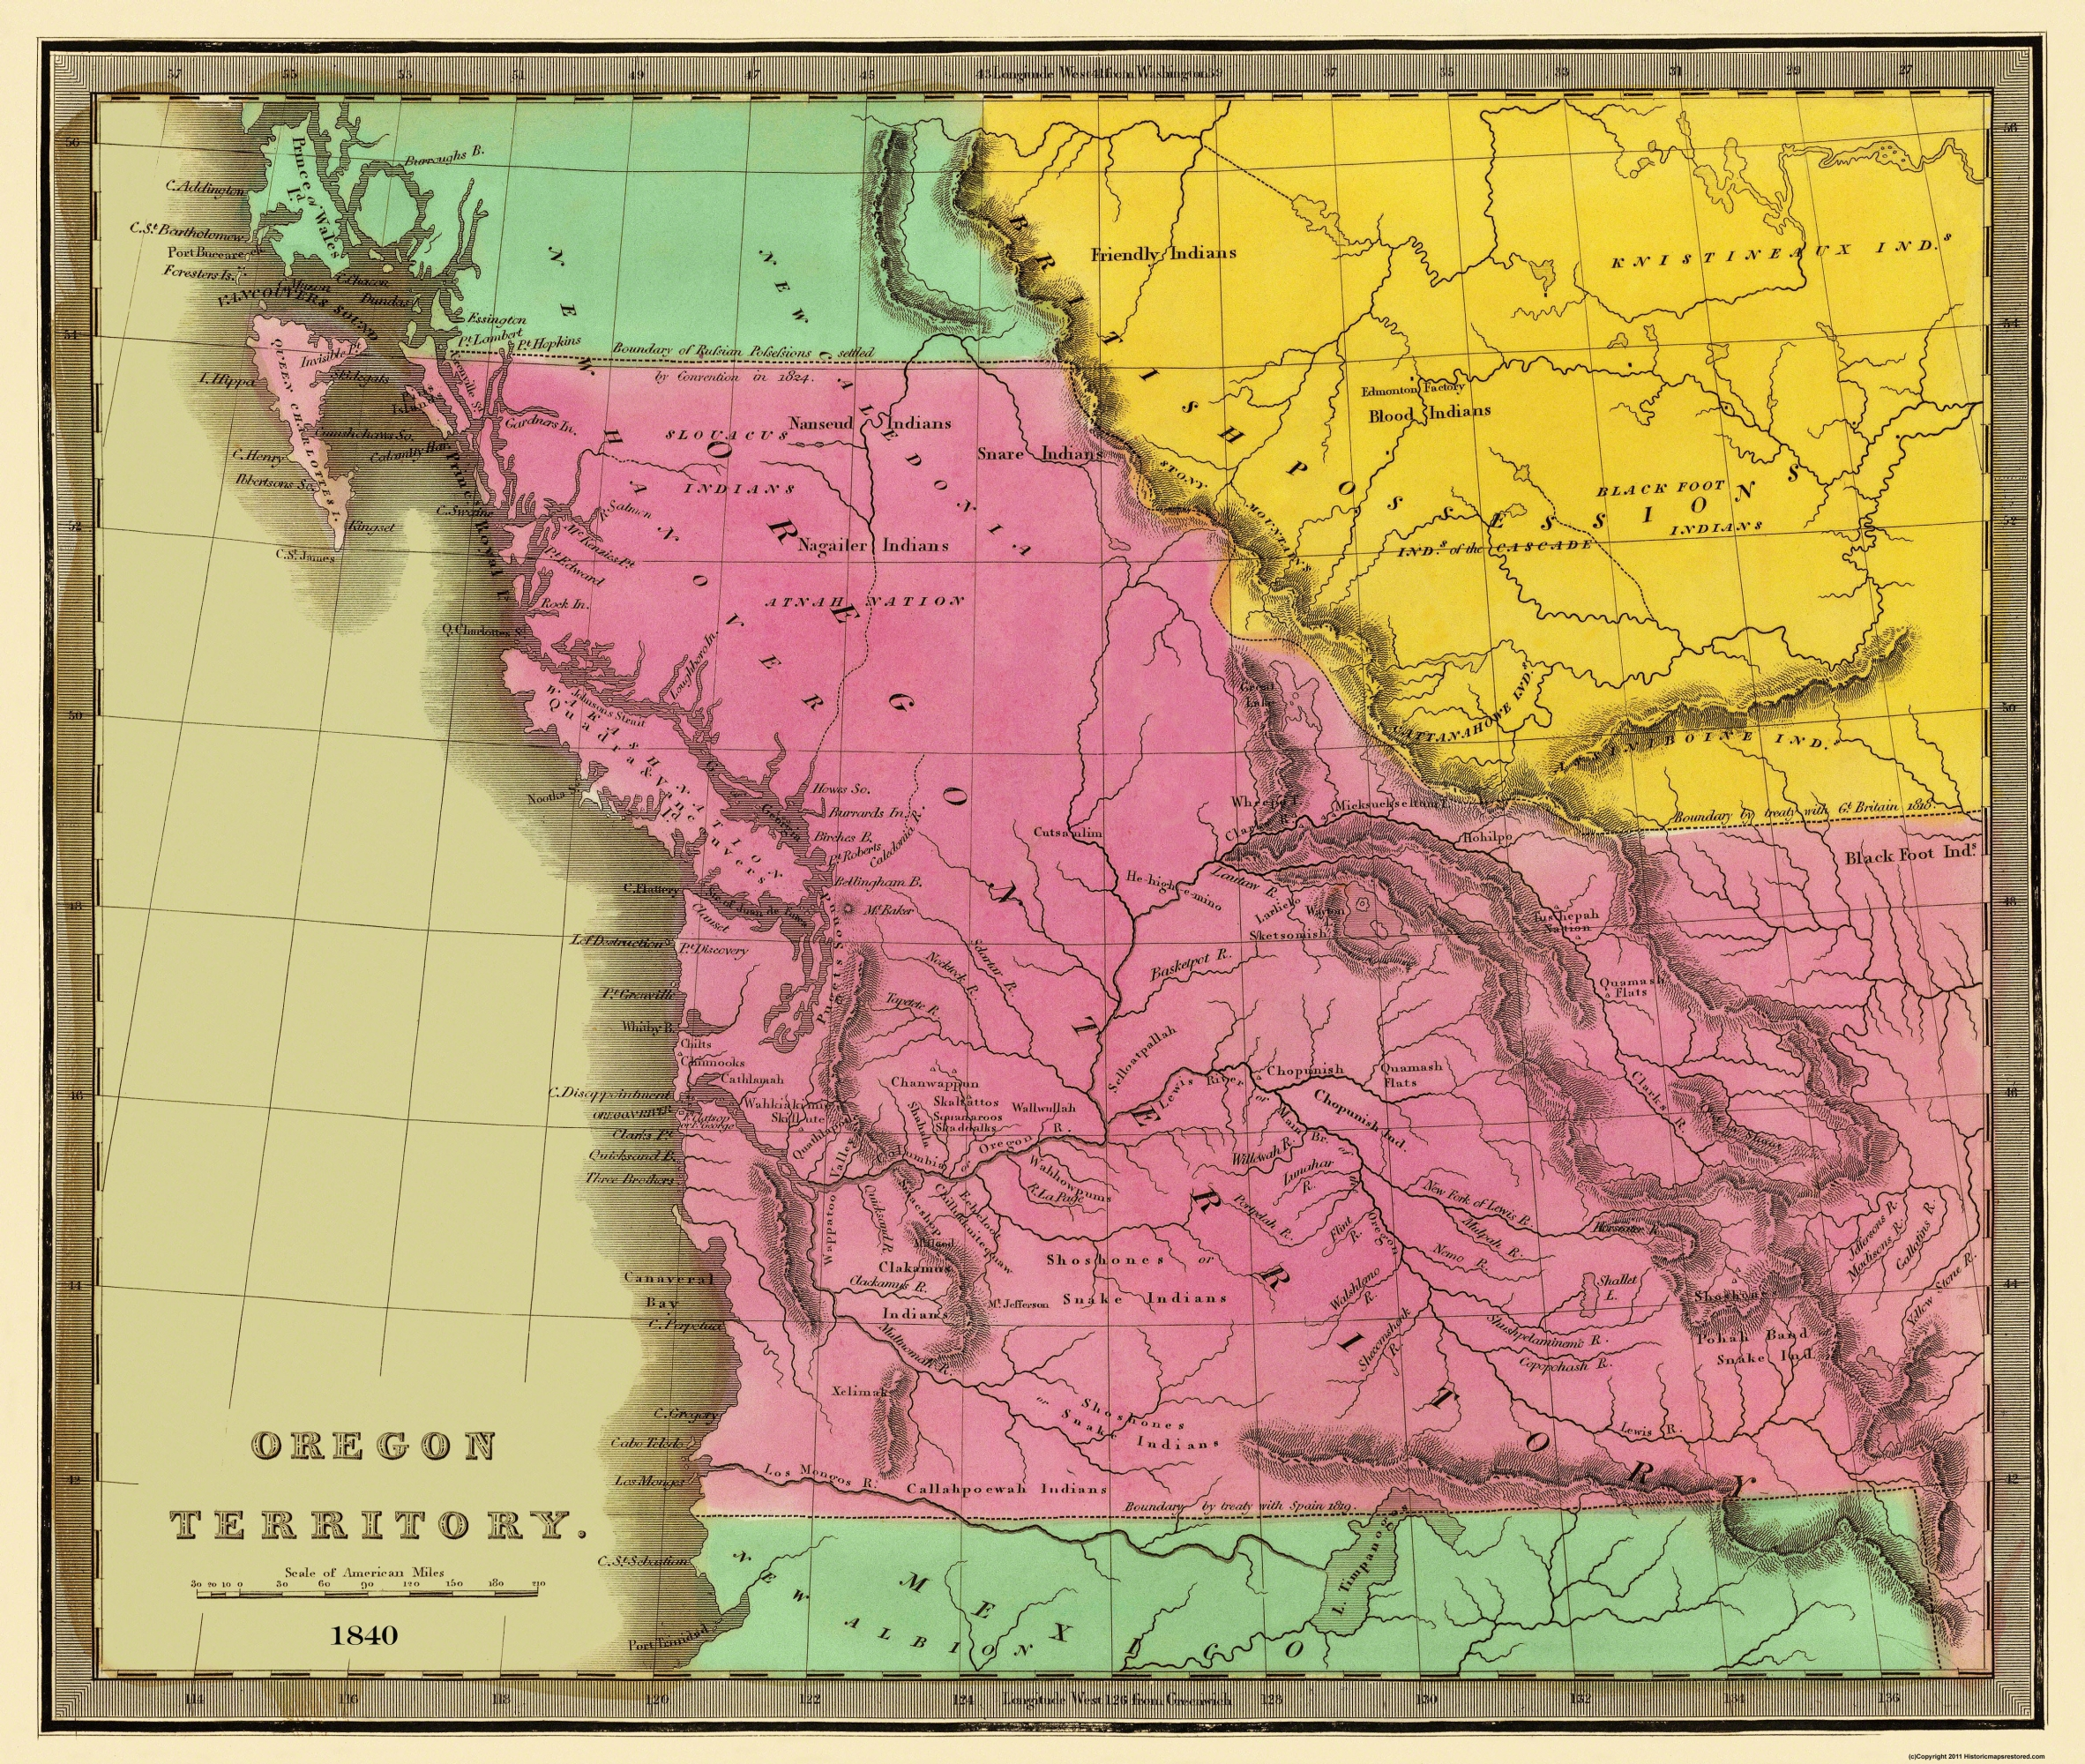 Old State Map Oregon Territory Greenleaf - Us map 1840